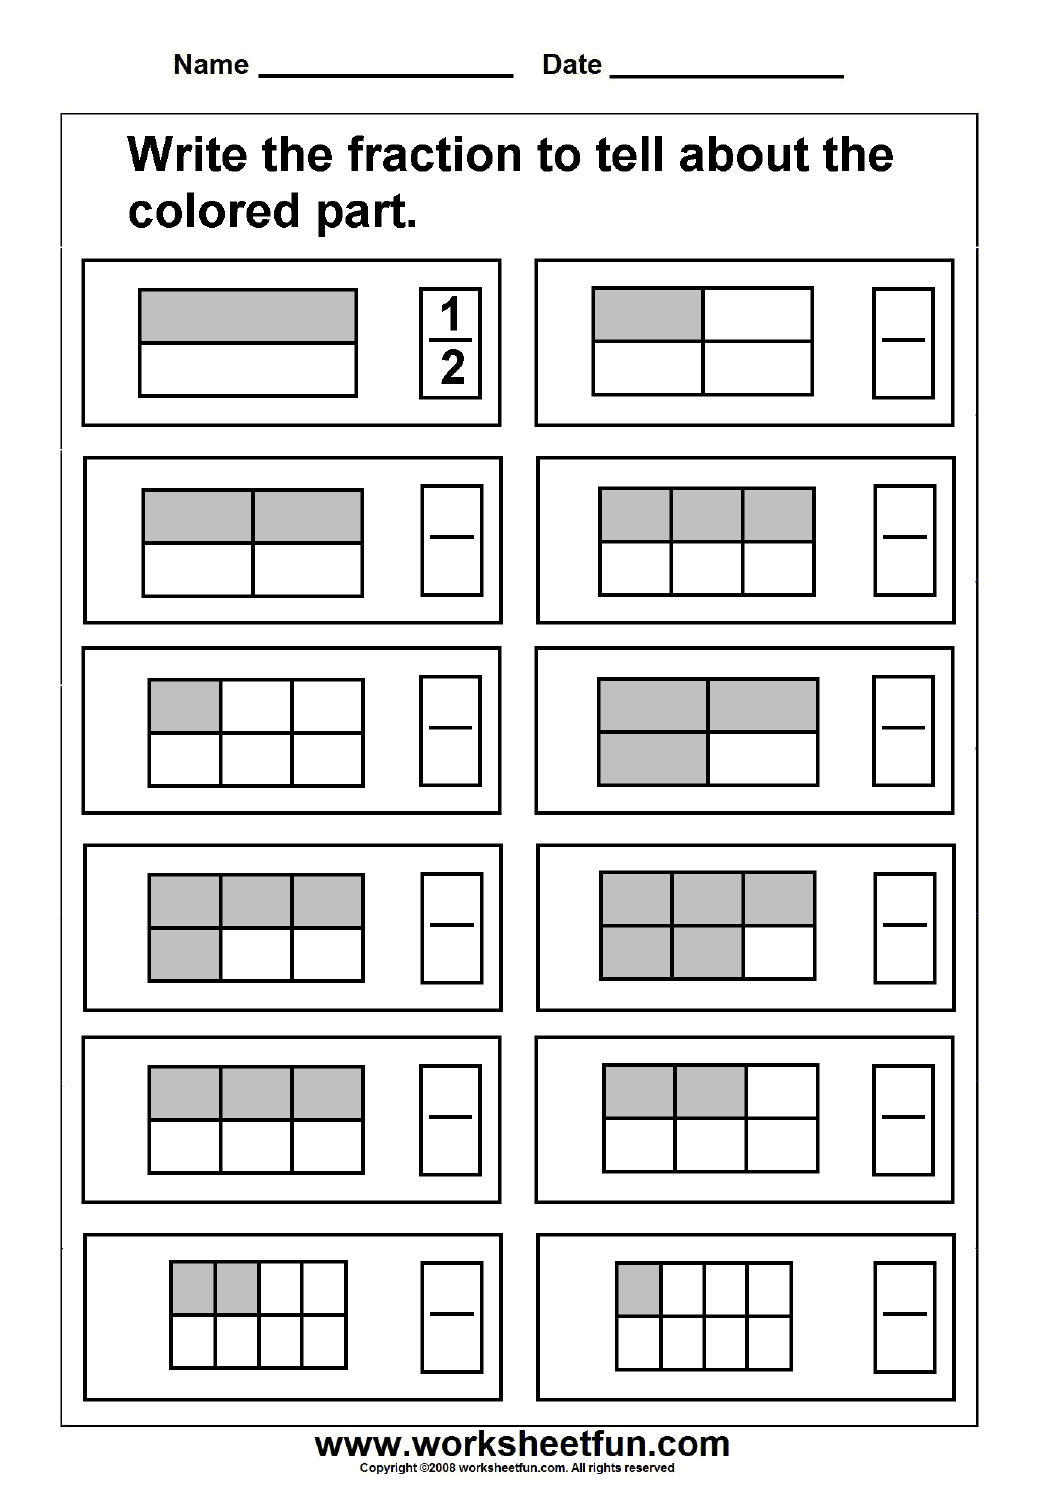 Fraction FREE Printable Worksheets Worksheetfun – Fraction Worksheets Free